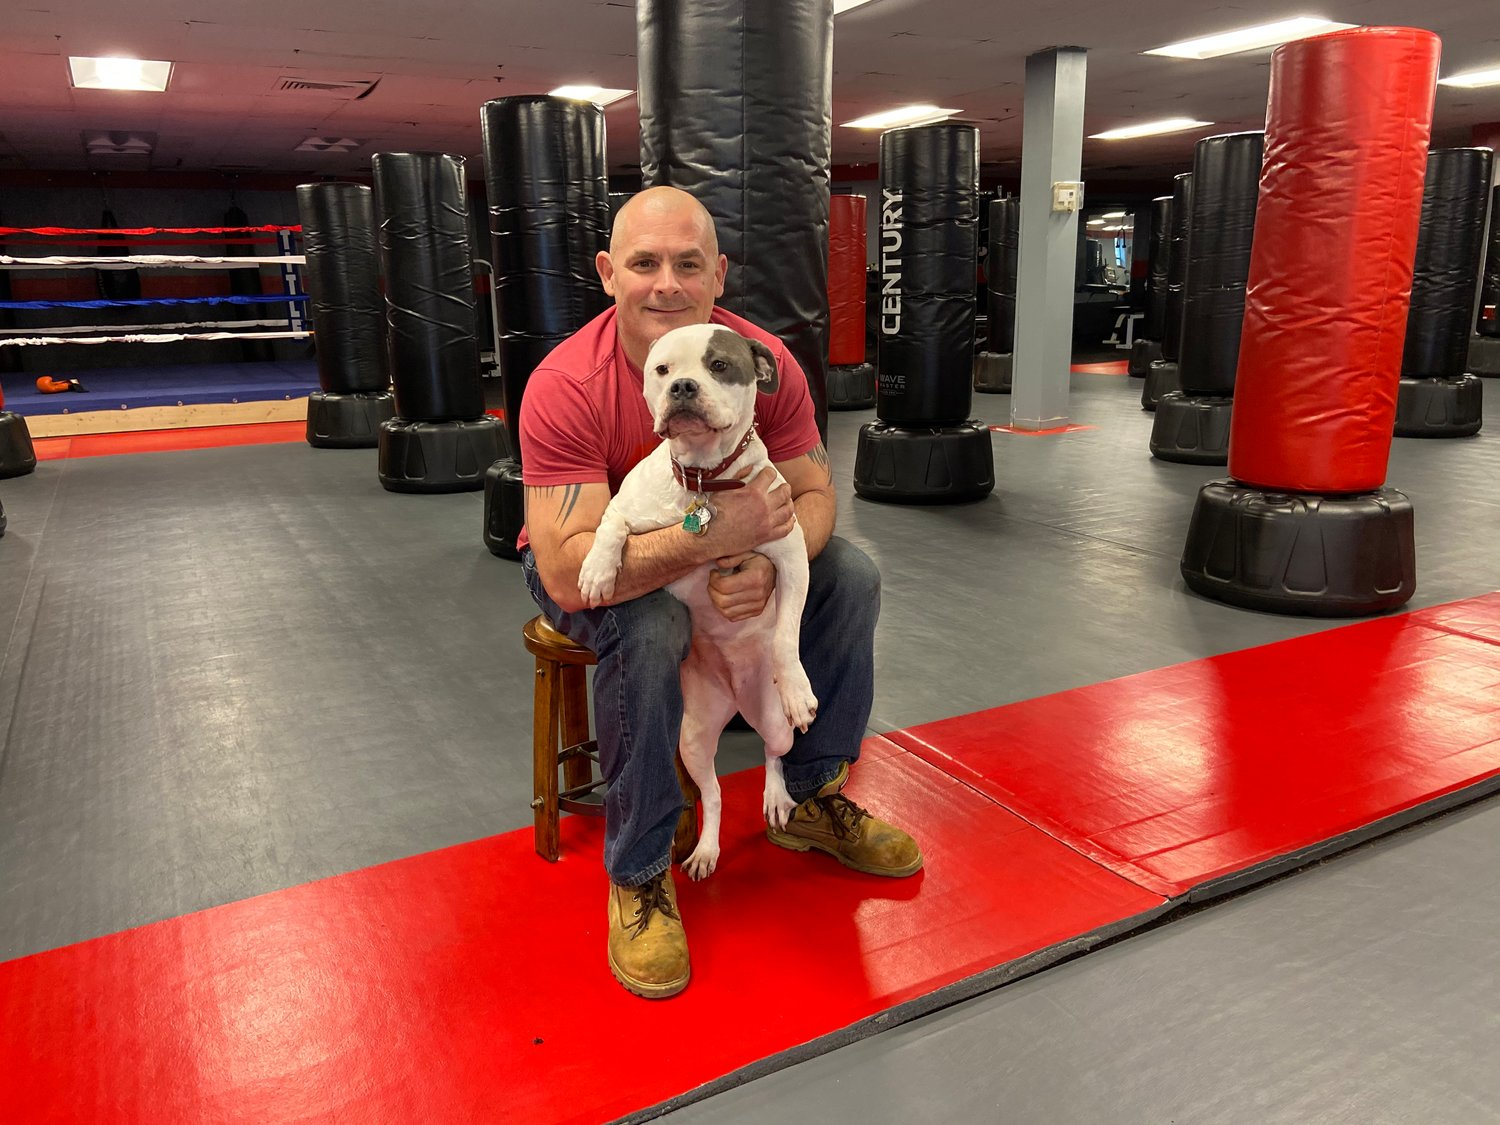 KickFit Bohemia is owned by Joe Marcus and his dog Ally, who is also the gym mascot and cardio coach.